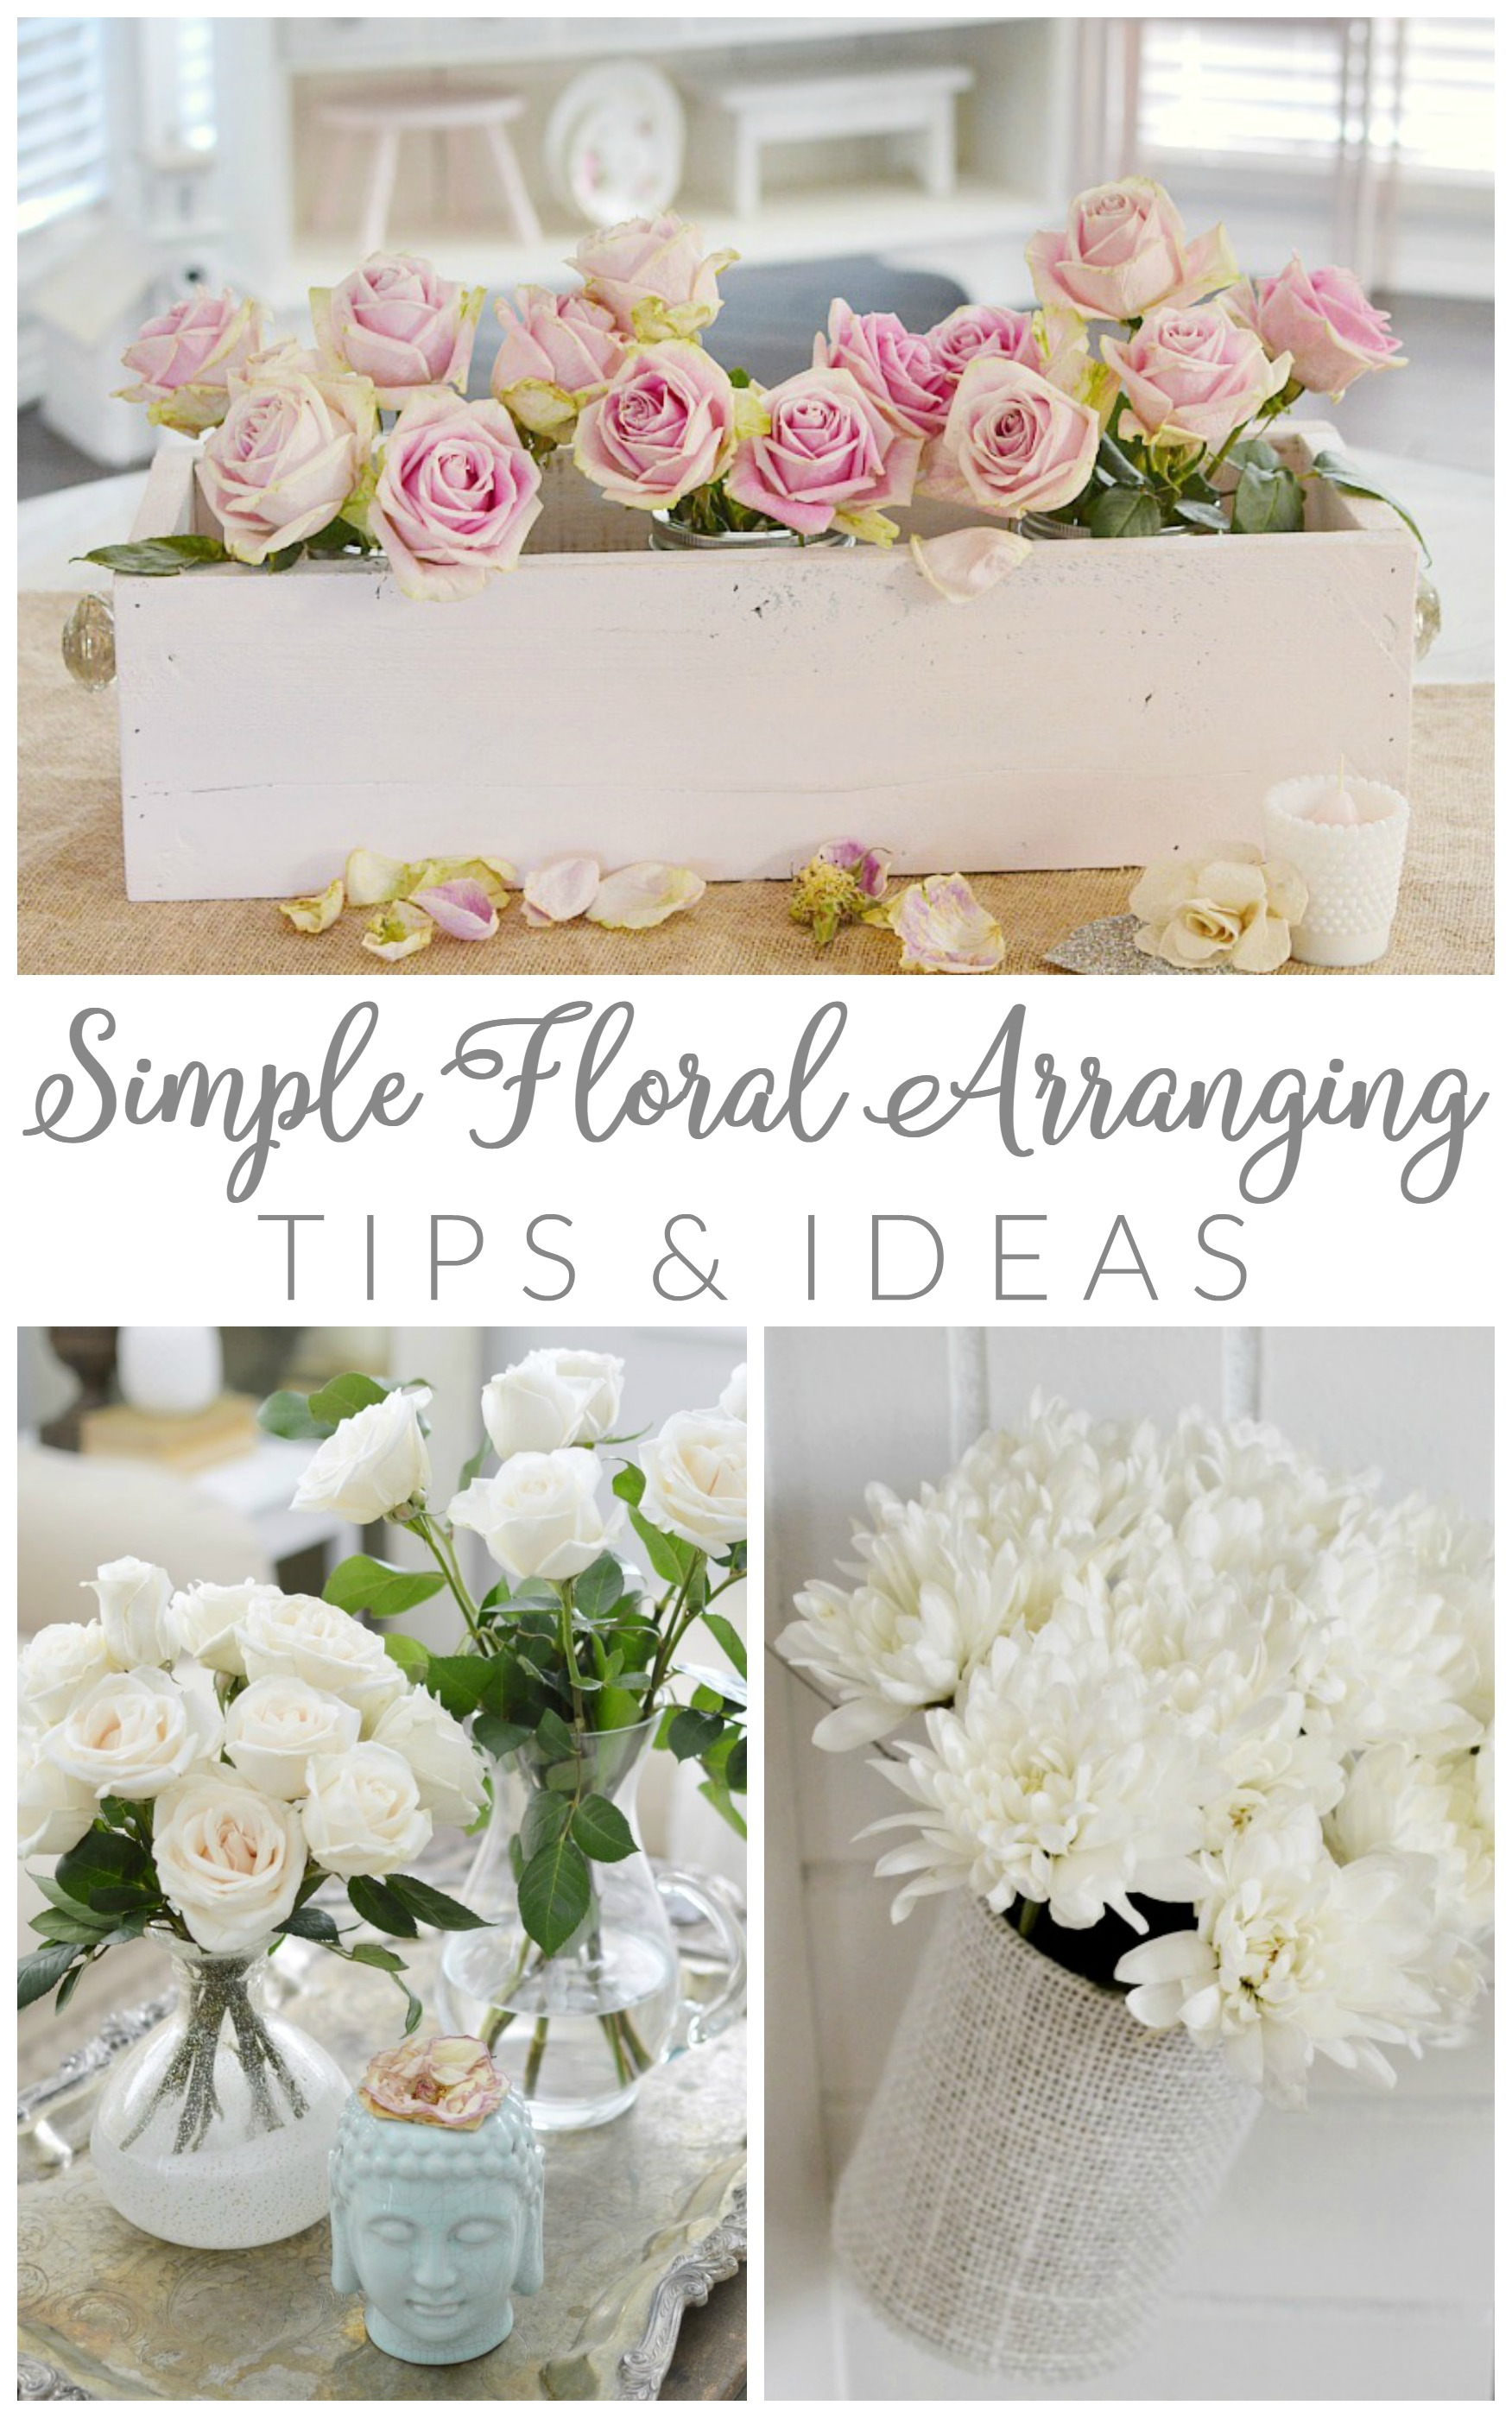 Simple floral arranging tips and ideas - foxhollowcottage.com - Easy, how to tutorials